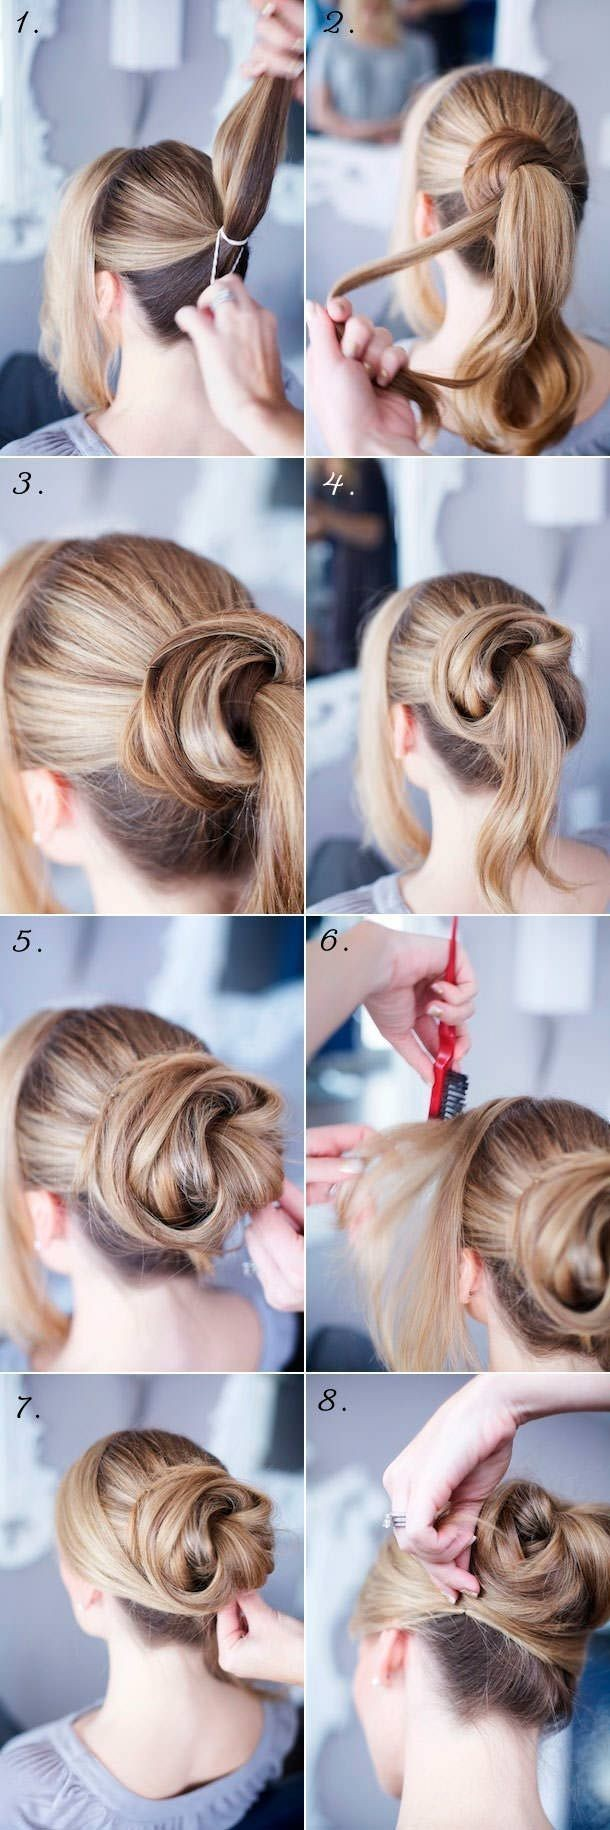 14 easy step by step updo hairstyles tutorials - pretty designs